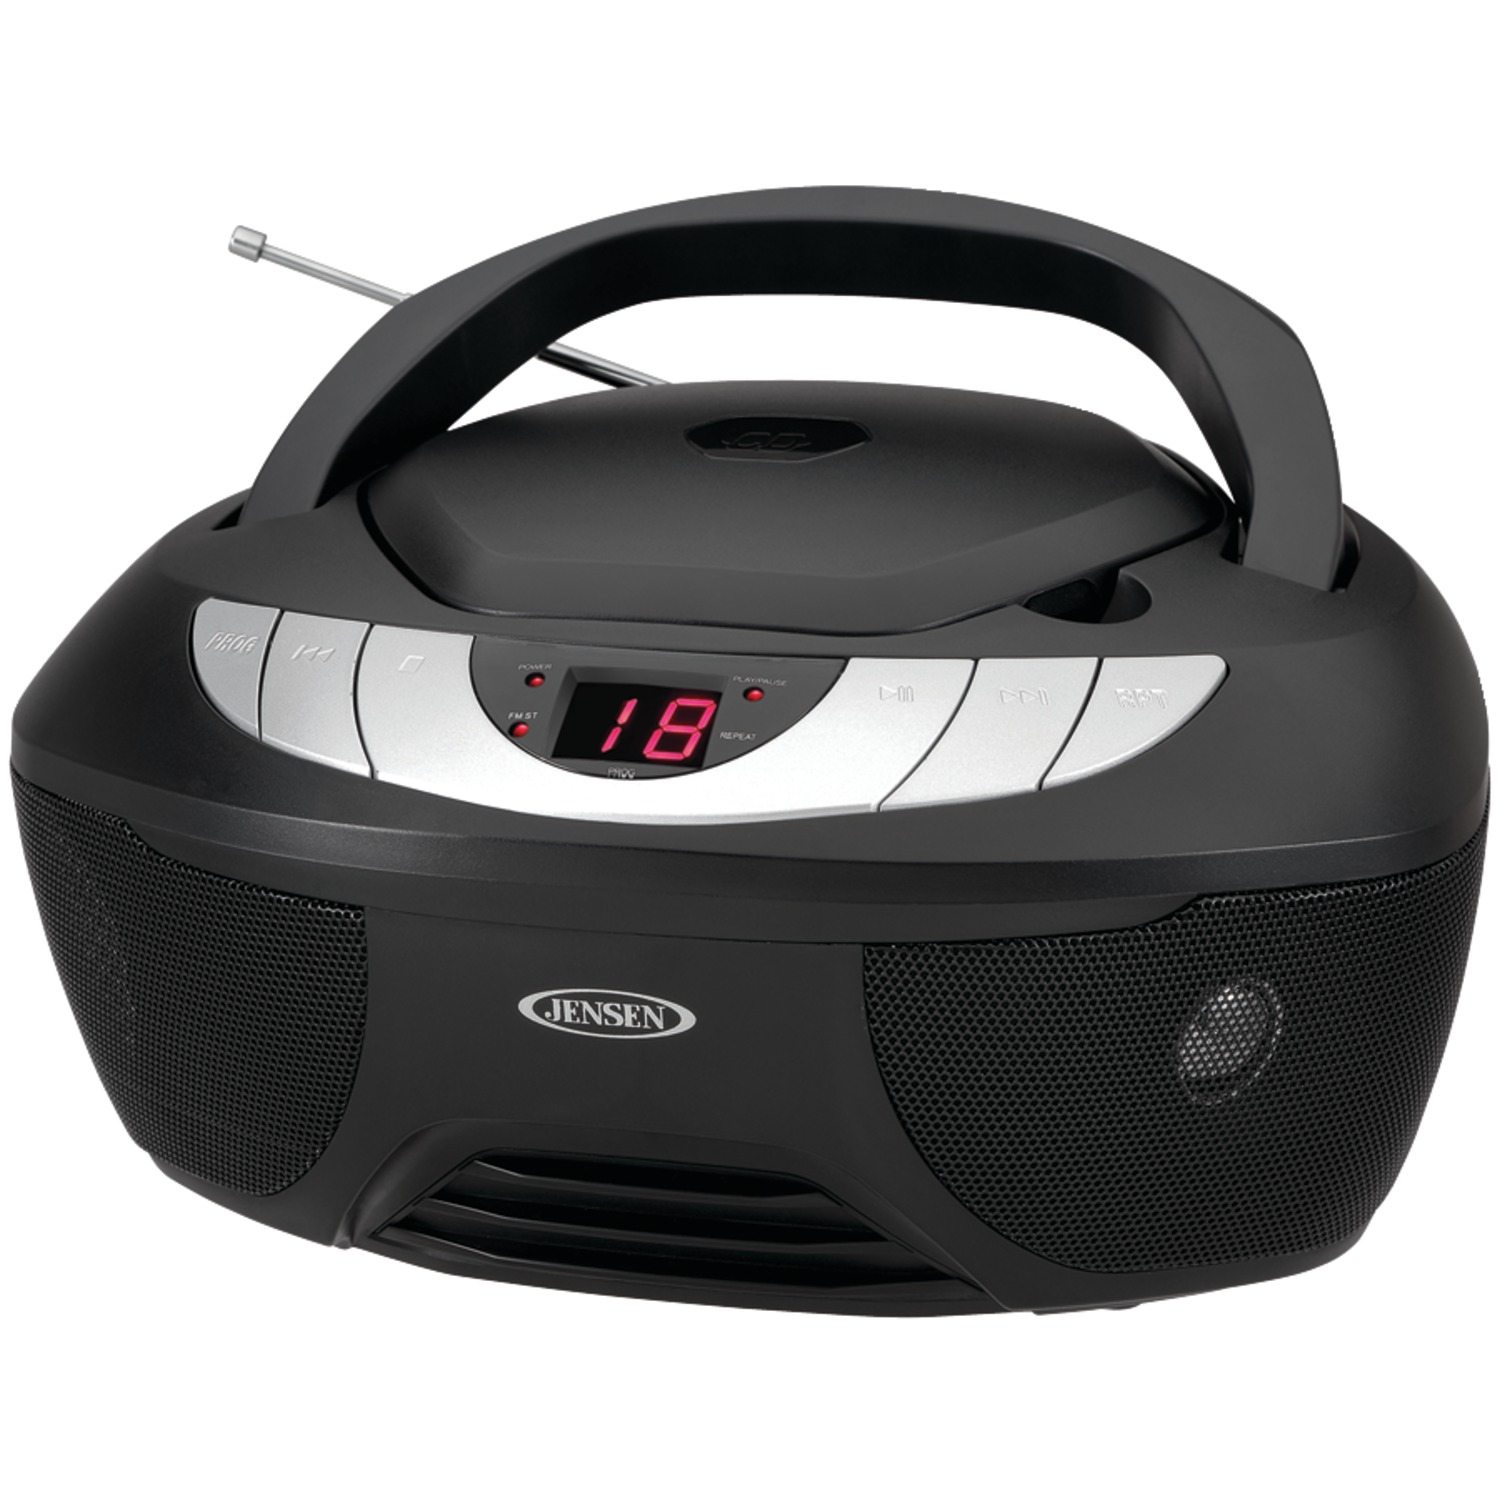 Jensen CD-475 Portable Stereo CD Player With AM/FM Radio & Kinetik C 24 PK